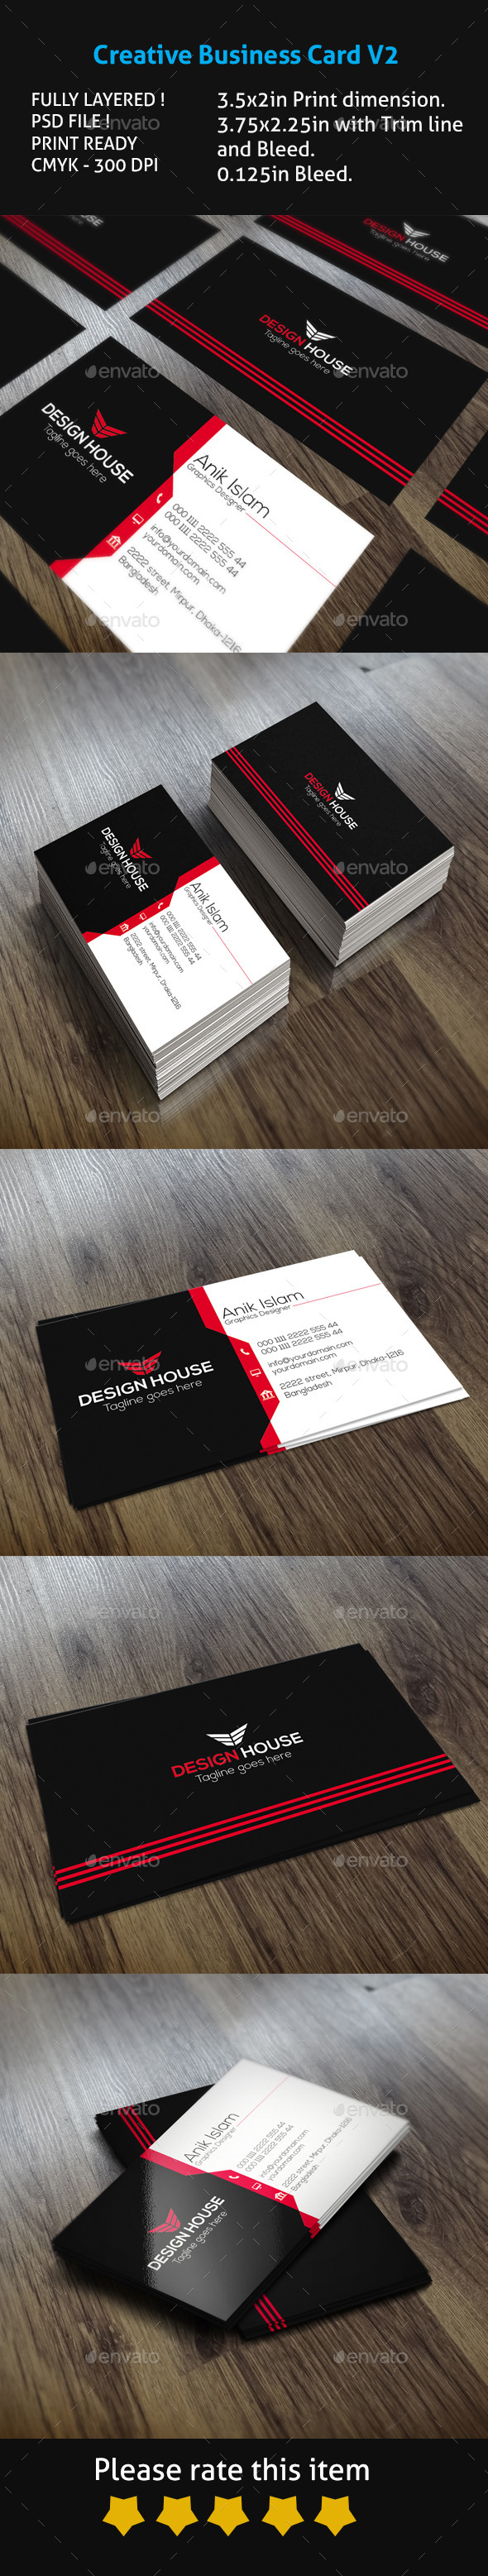 GraphicRiver Creative Business Card V2 10618998